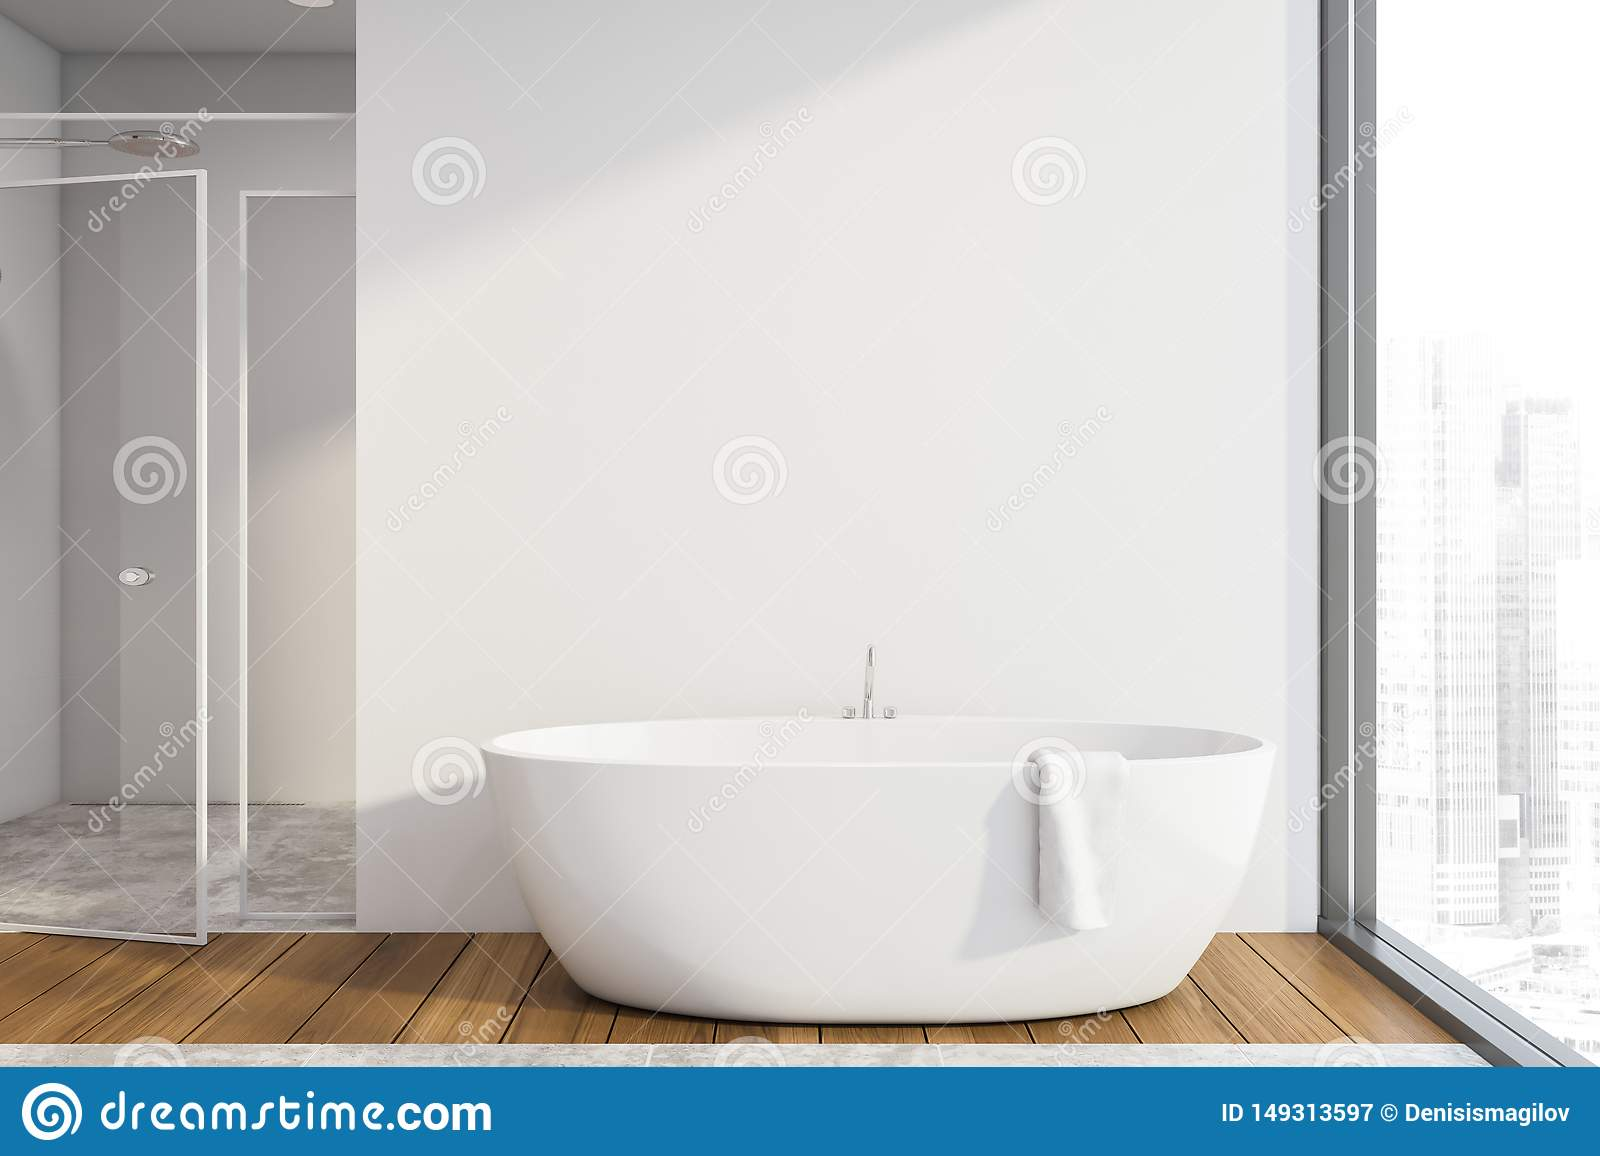 White Bathroom Interior Tub And Shower Stock Illustration Illustration Of Architecture Cozy 149313597